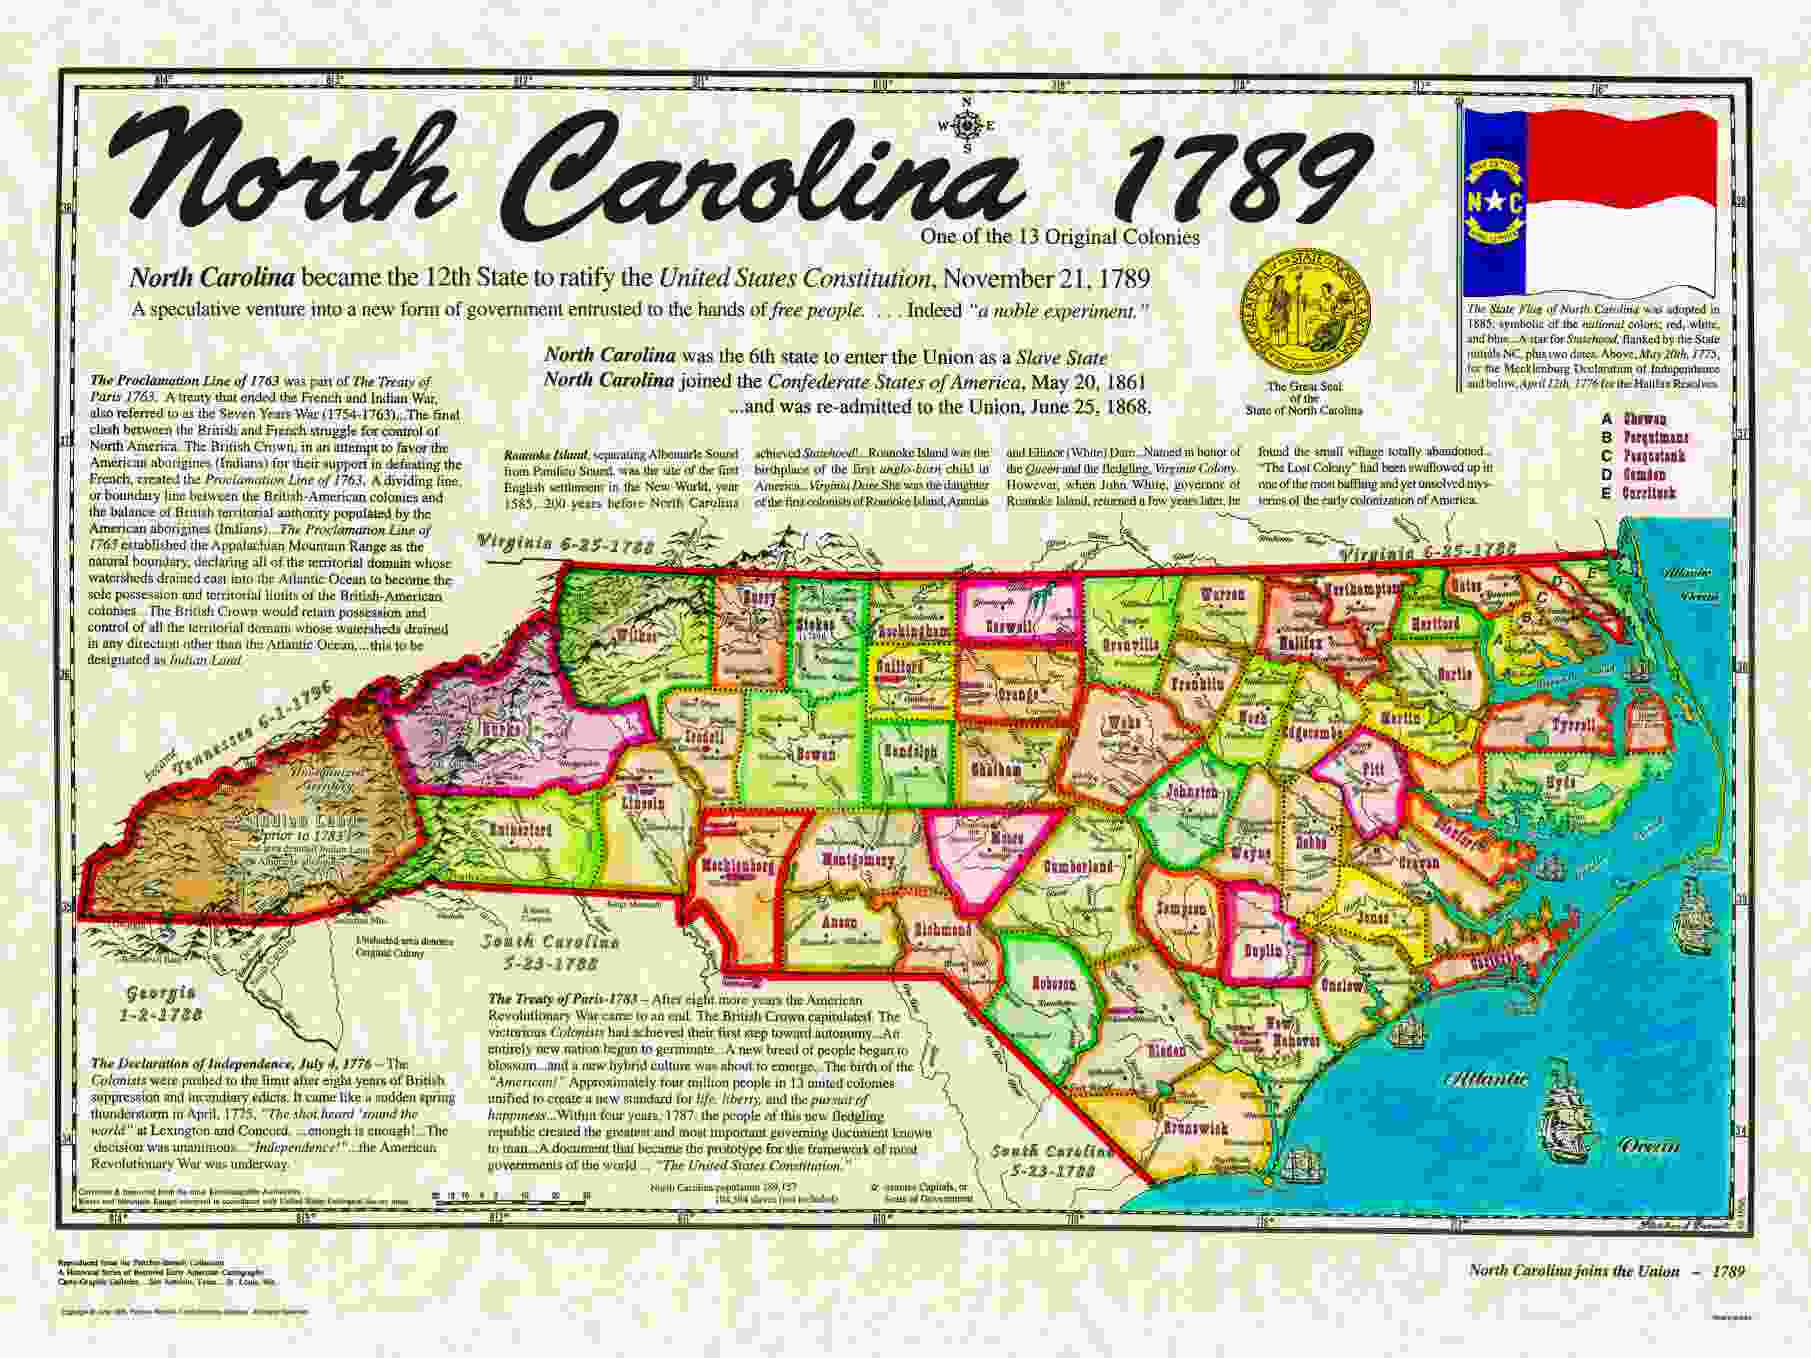 1790 George Washington - North Carolina ratifies the Constitution ...